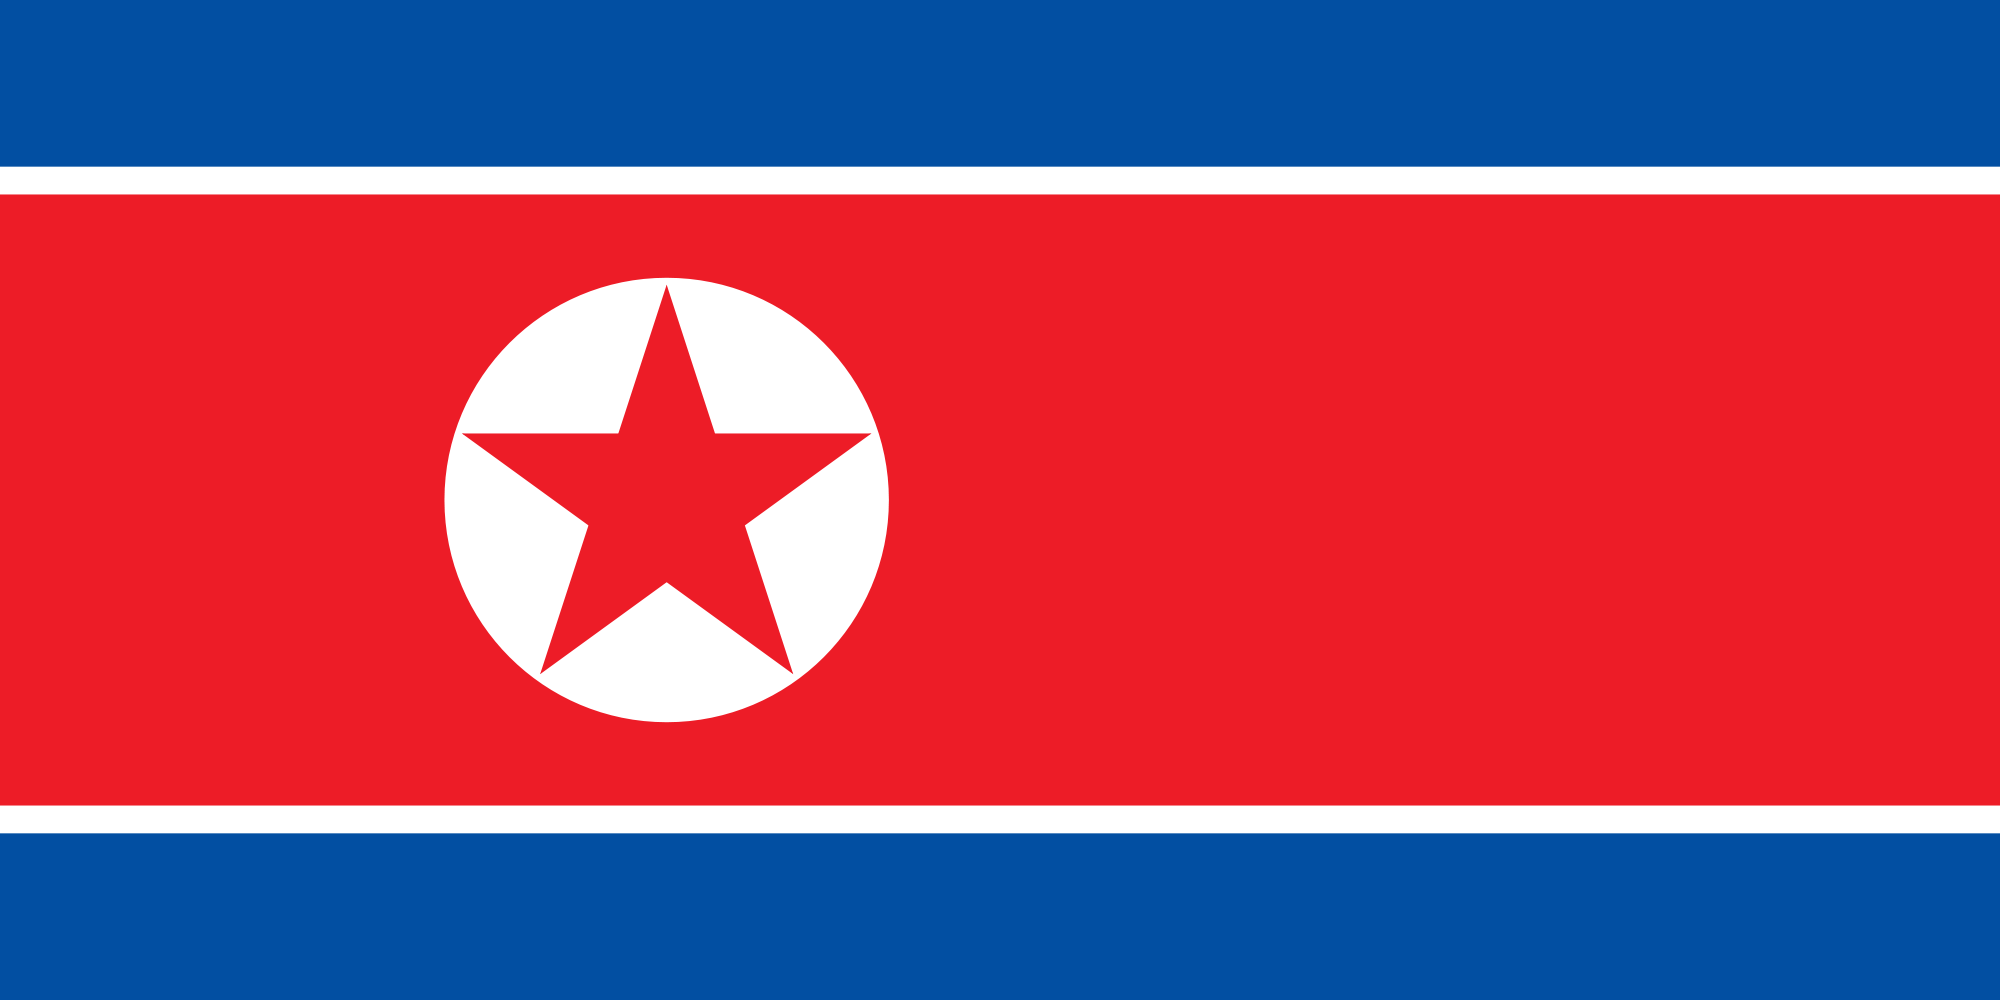 Flag of North Korea | North Korea | Know Your Meme